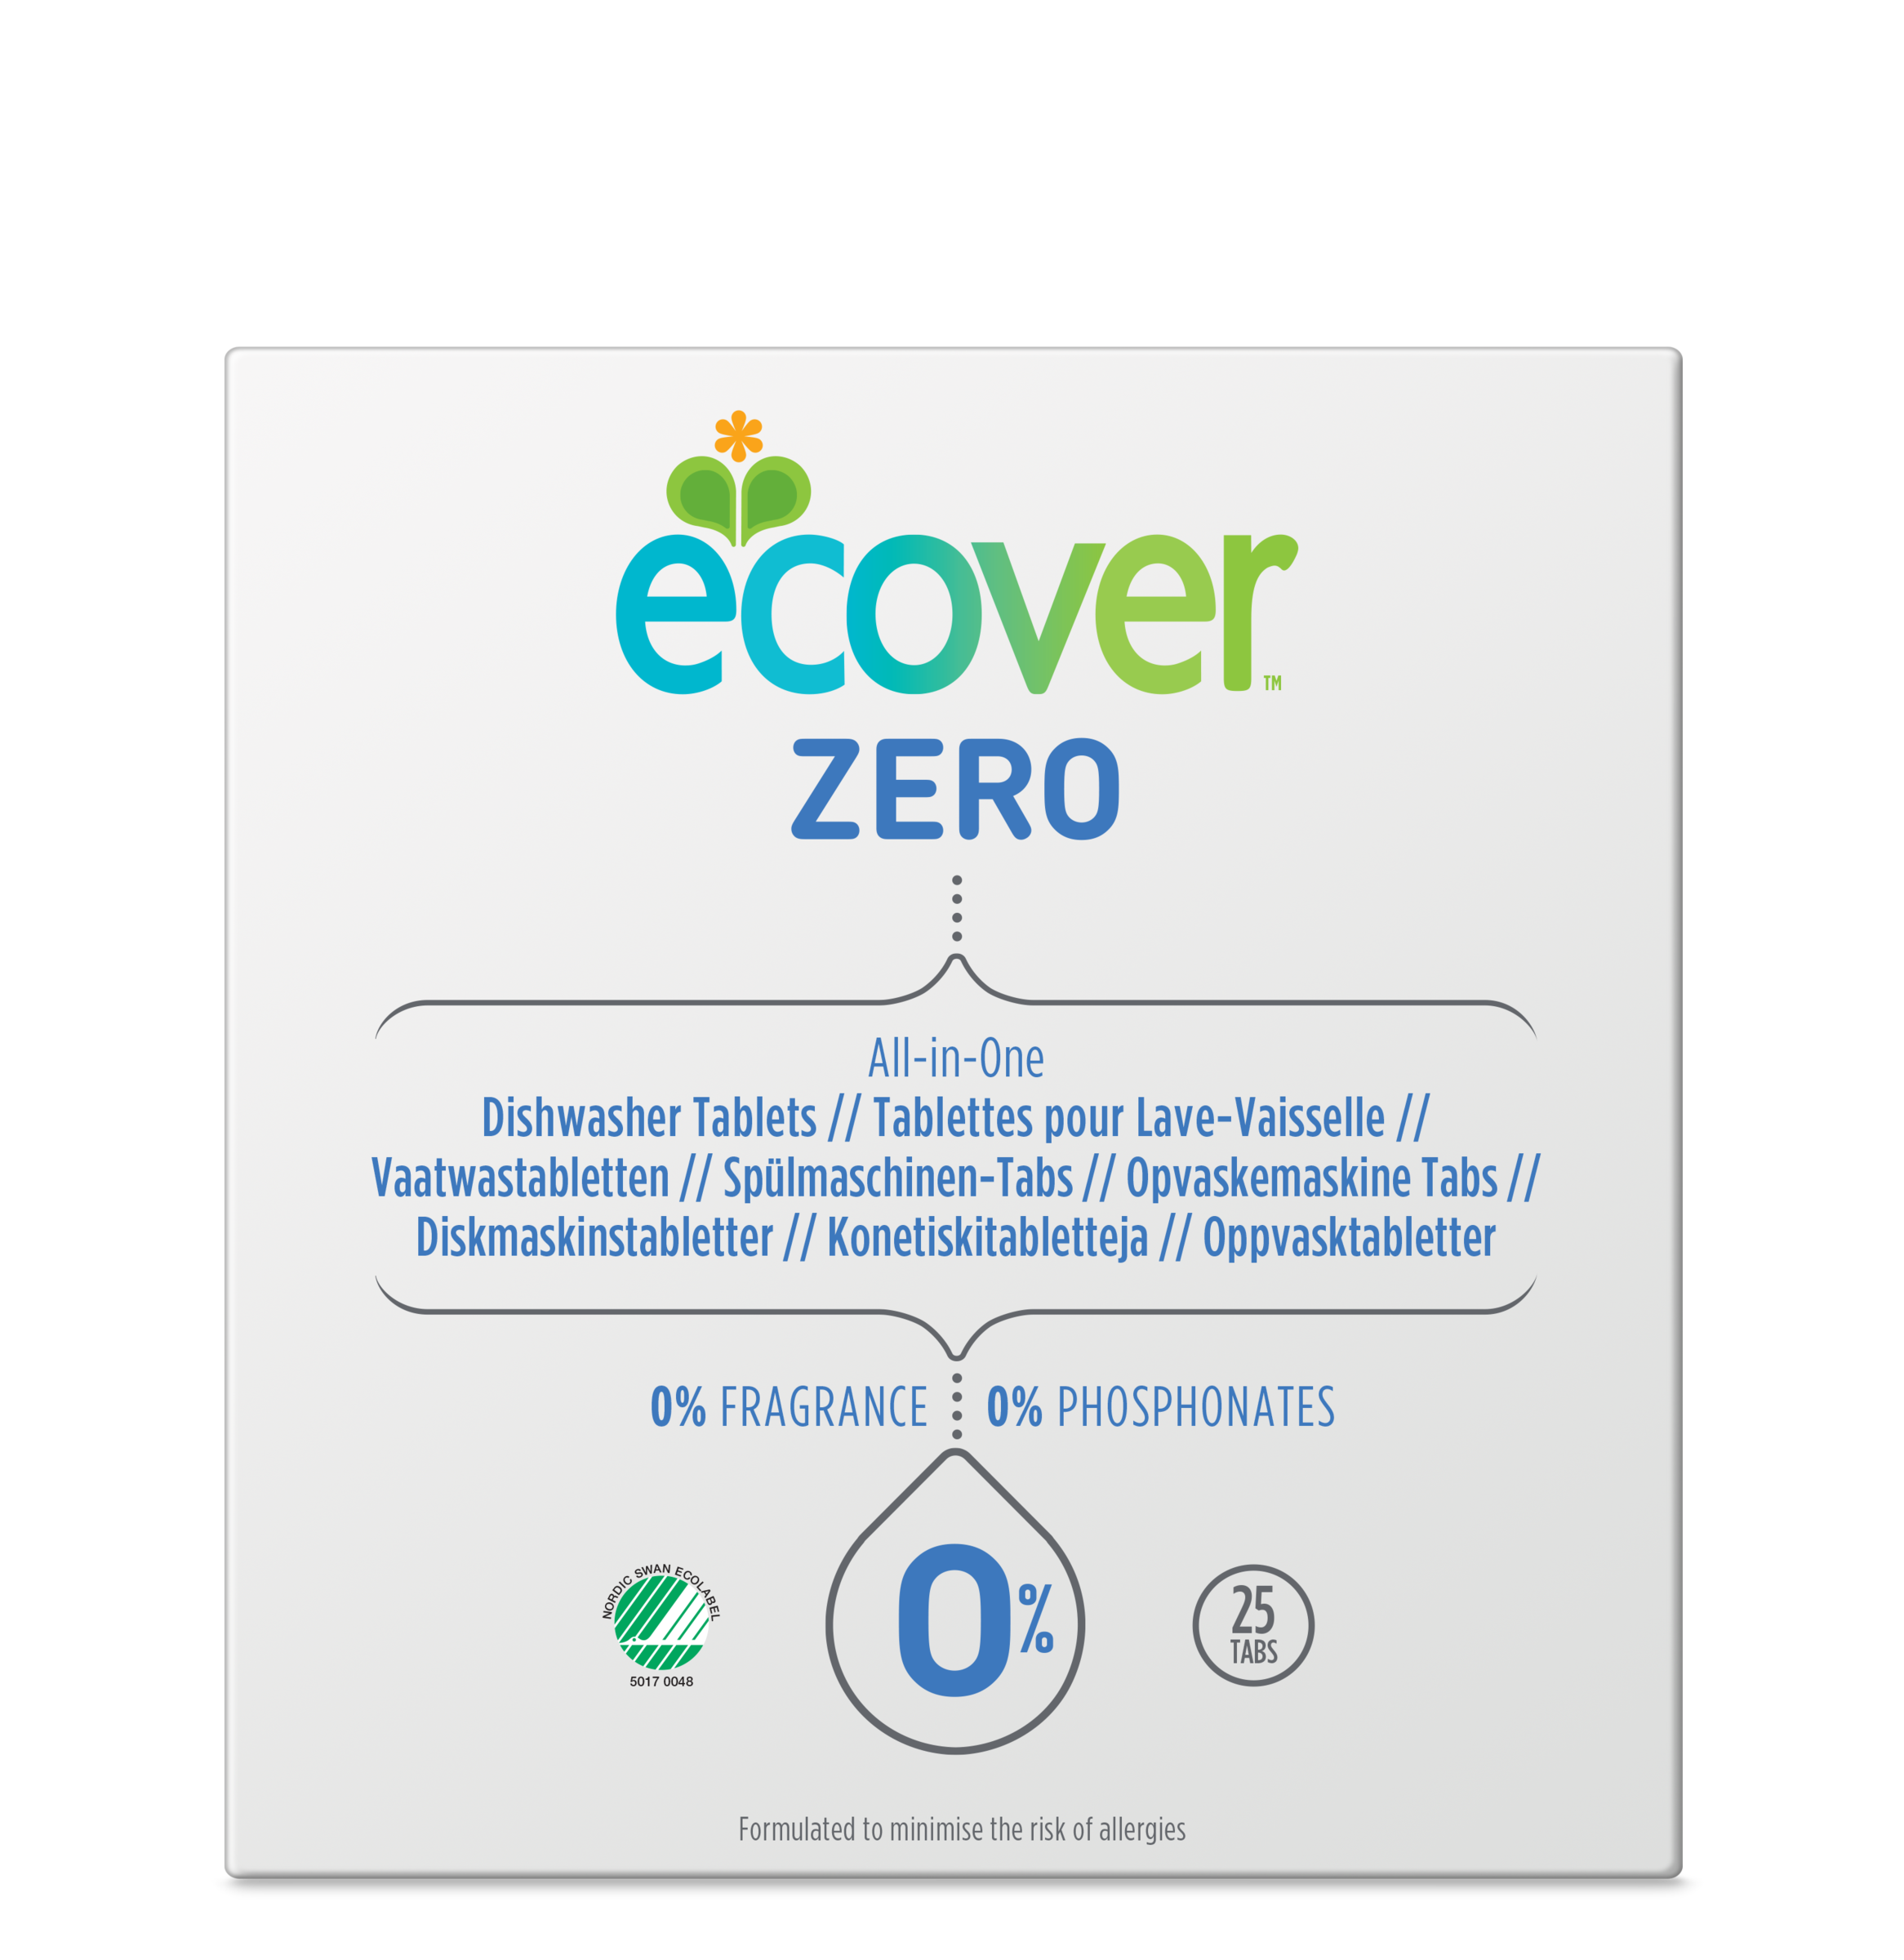 Ecover Zero Dishwasher All in One Tablets 0.5KG 8LANG_4004304.png